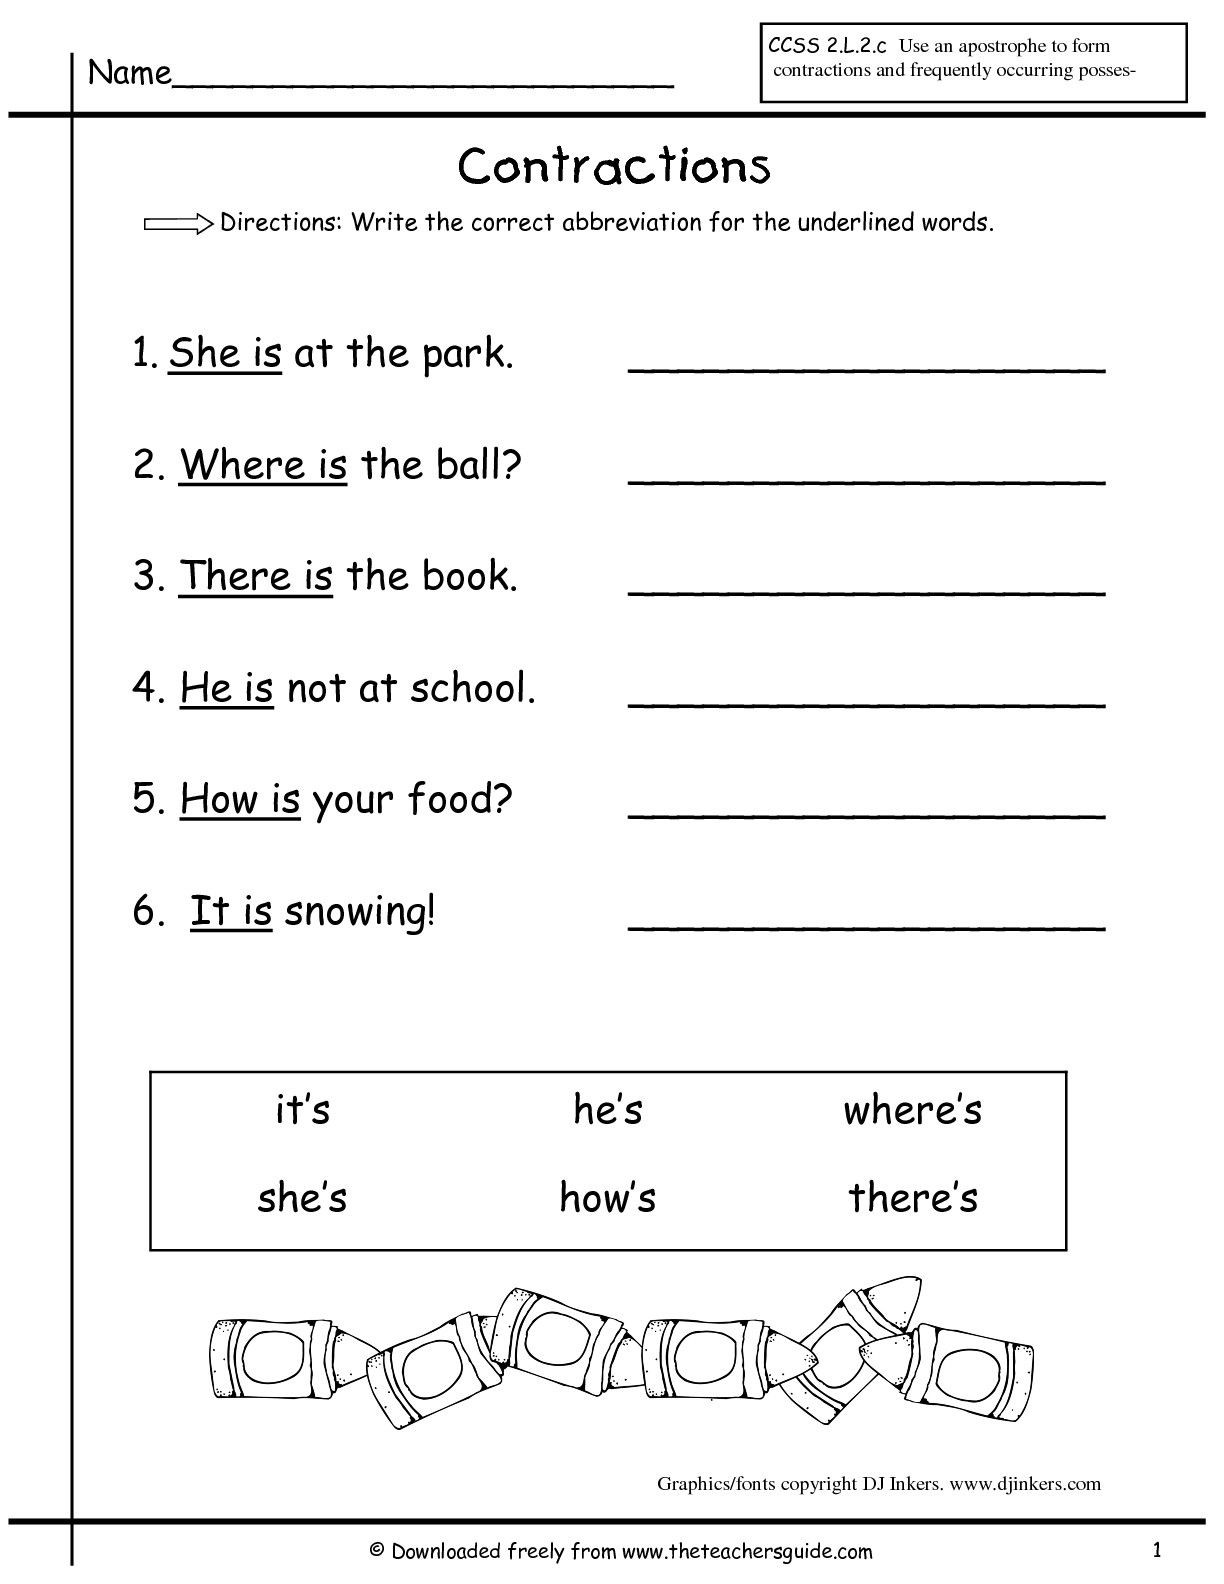 5th Grade Science Practice Worksheets Math Games for Five Year Olds Past Indefinite Tense